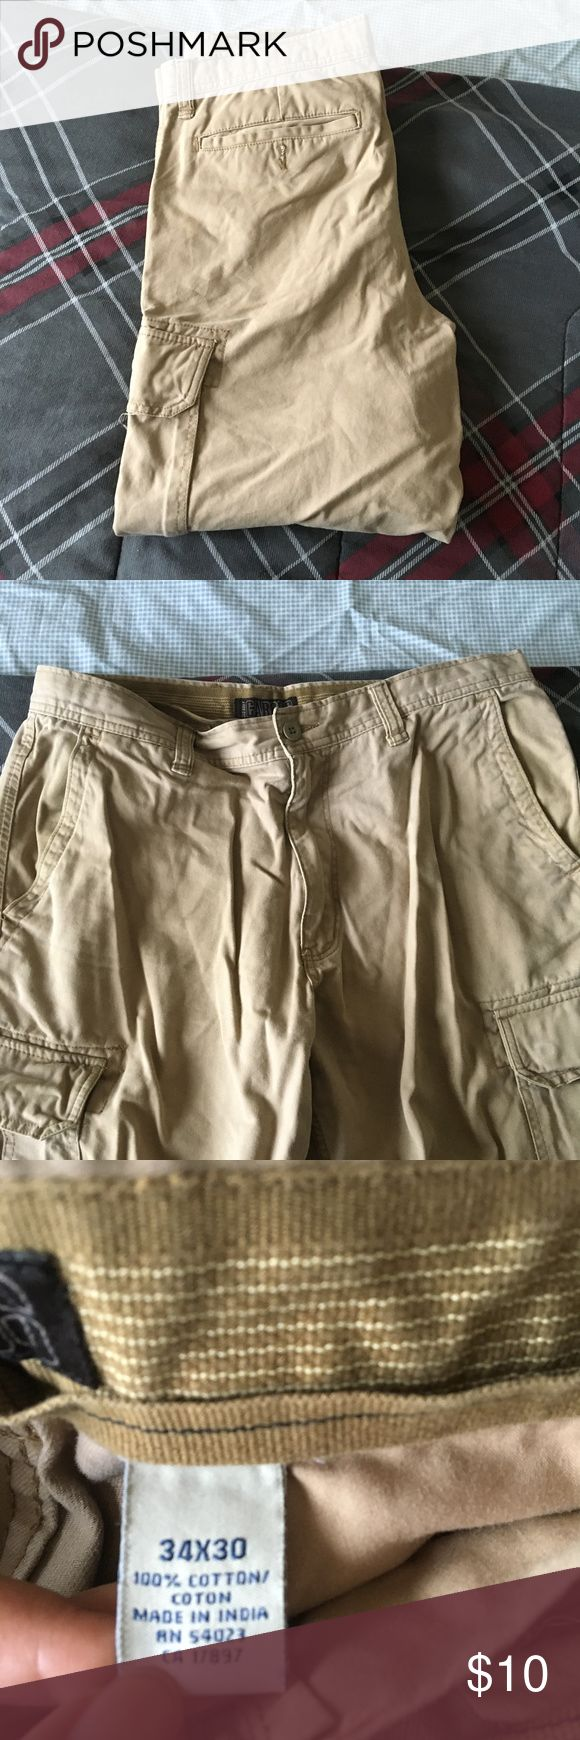 🌴MENS🌴 Cargo Pants Size 34x30 Great condition cargo pants with multiple pockets. Old Navy Pants Cargo